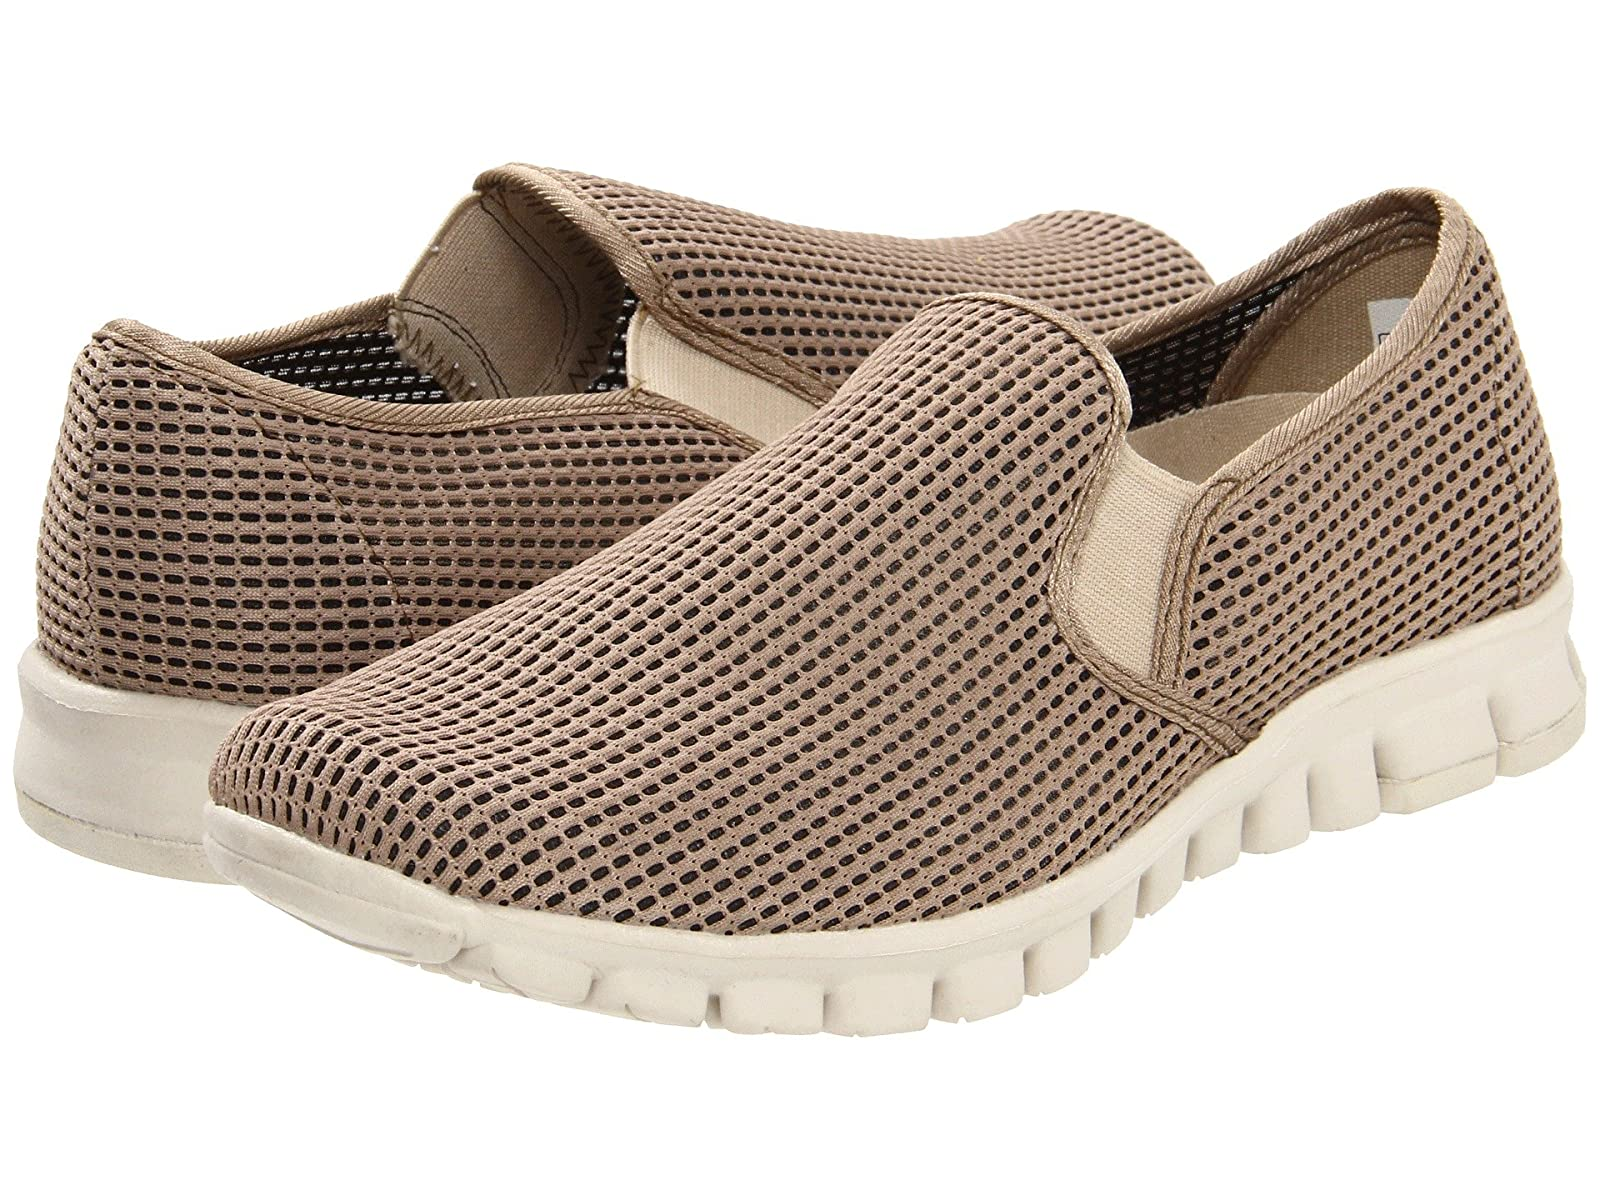 Deer Stags Nosox by Deerstags - WinoAtmospheric grades have affordable shoes